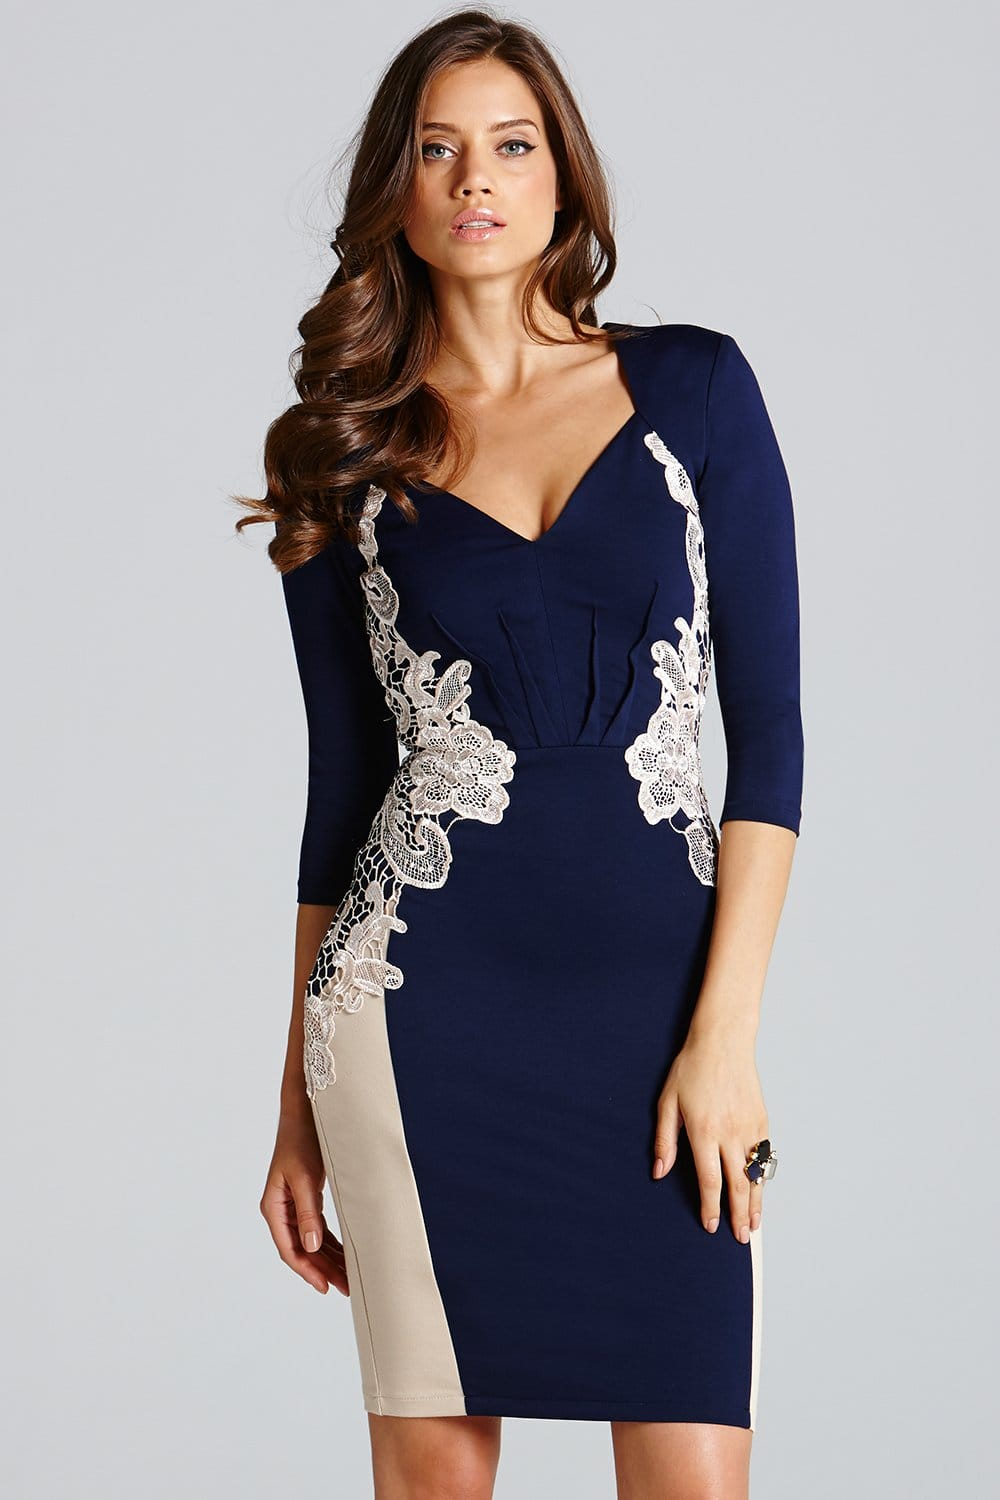 Need a perfect Mother Of The Bride outfit? We also have Designer Special Occasion Dresses, Hats, Accessories, Shoes & Bags based in our Glasgow, UK store with one of the largest dress sections. Short navy/cream dress & jacket D Full length lace dress. 1G Navy-Nude size £ £ Sale! Short fitted dress with matching.